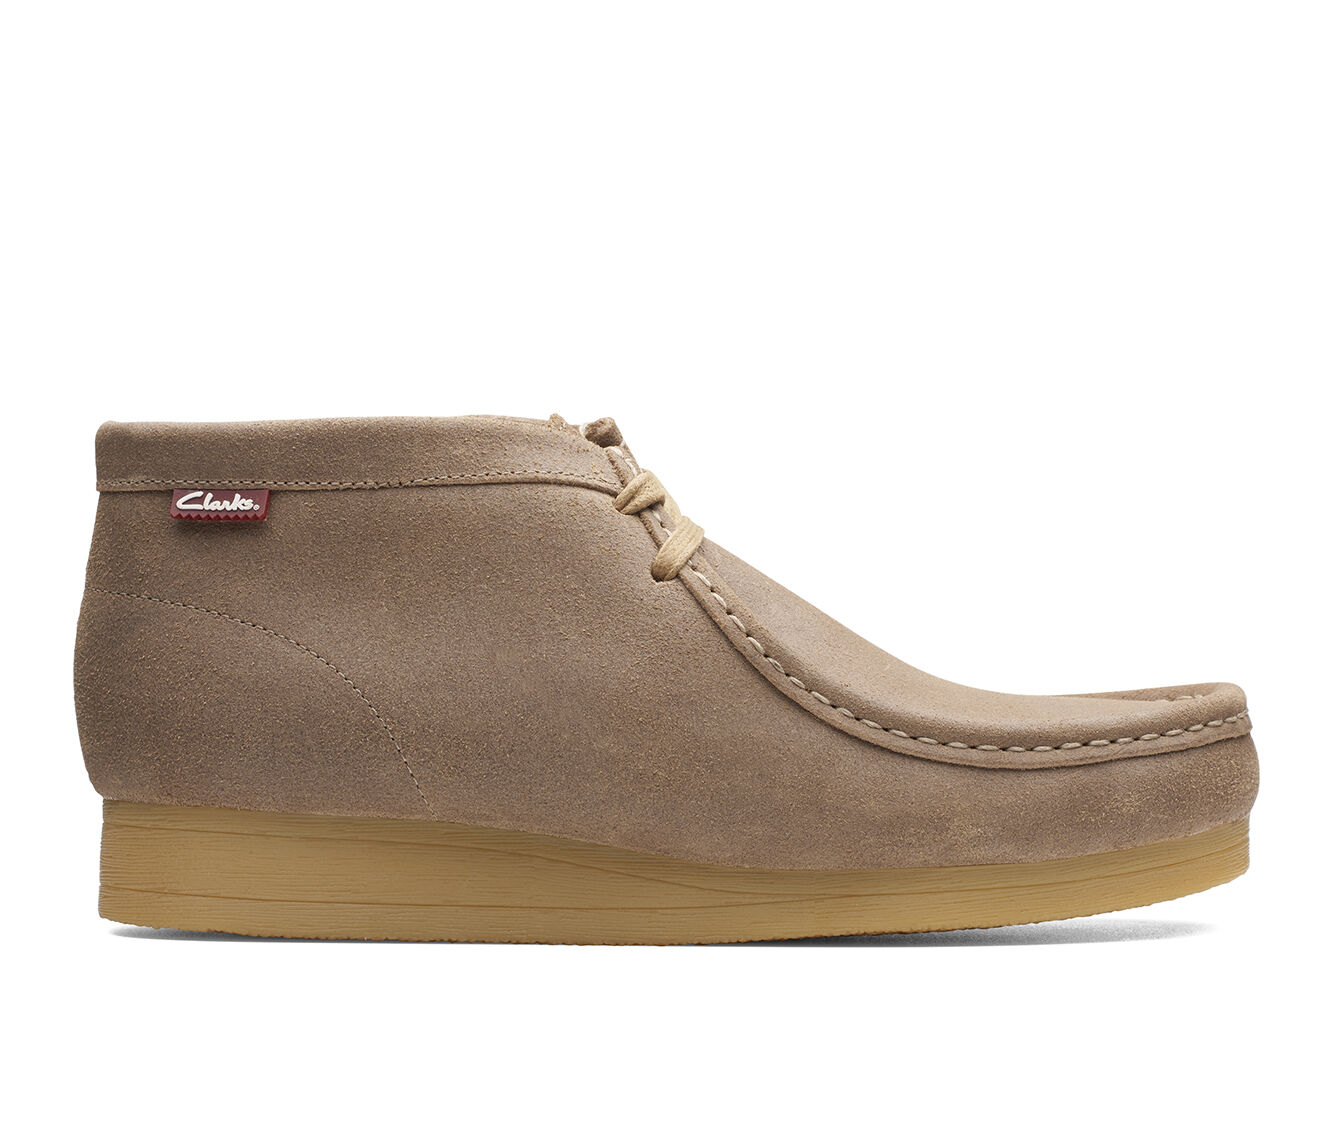 Big Discount Men's Clarks Stinson Hi Boots Taupe Distress